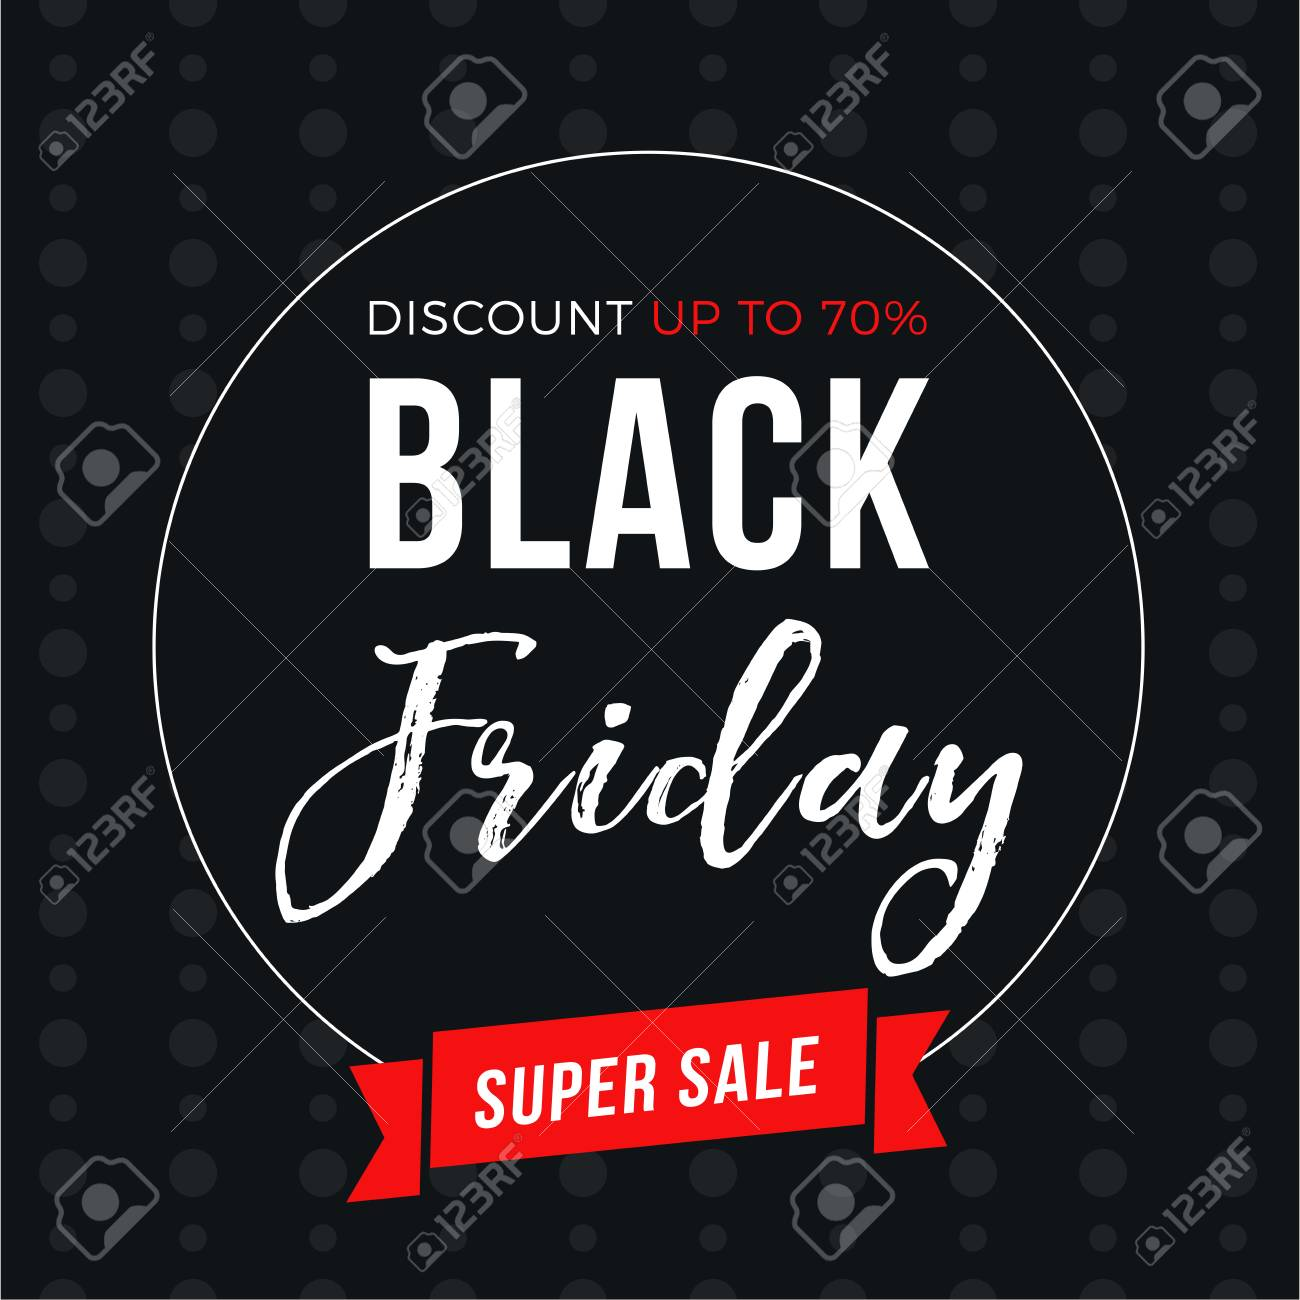 Black Friday Sale Black Friday Sale Banner Most Popular Promo Of The Year